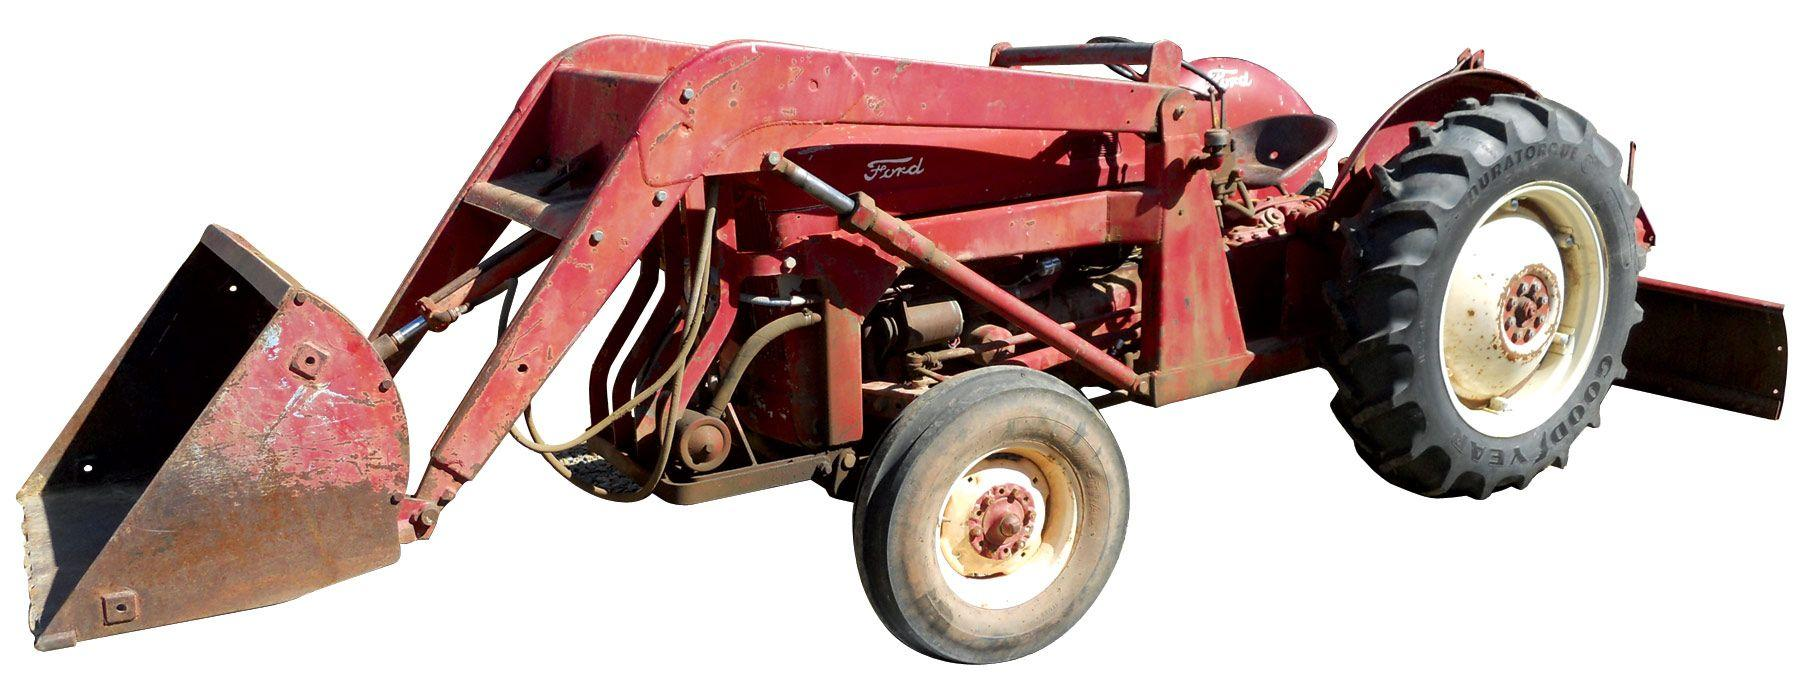 medium resolution of image 1 tractor ford jubilee w front end loader rear blade attachment